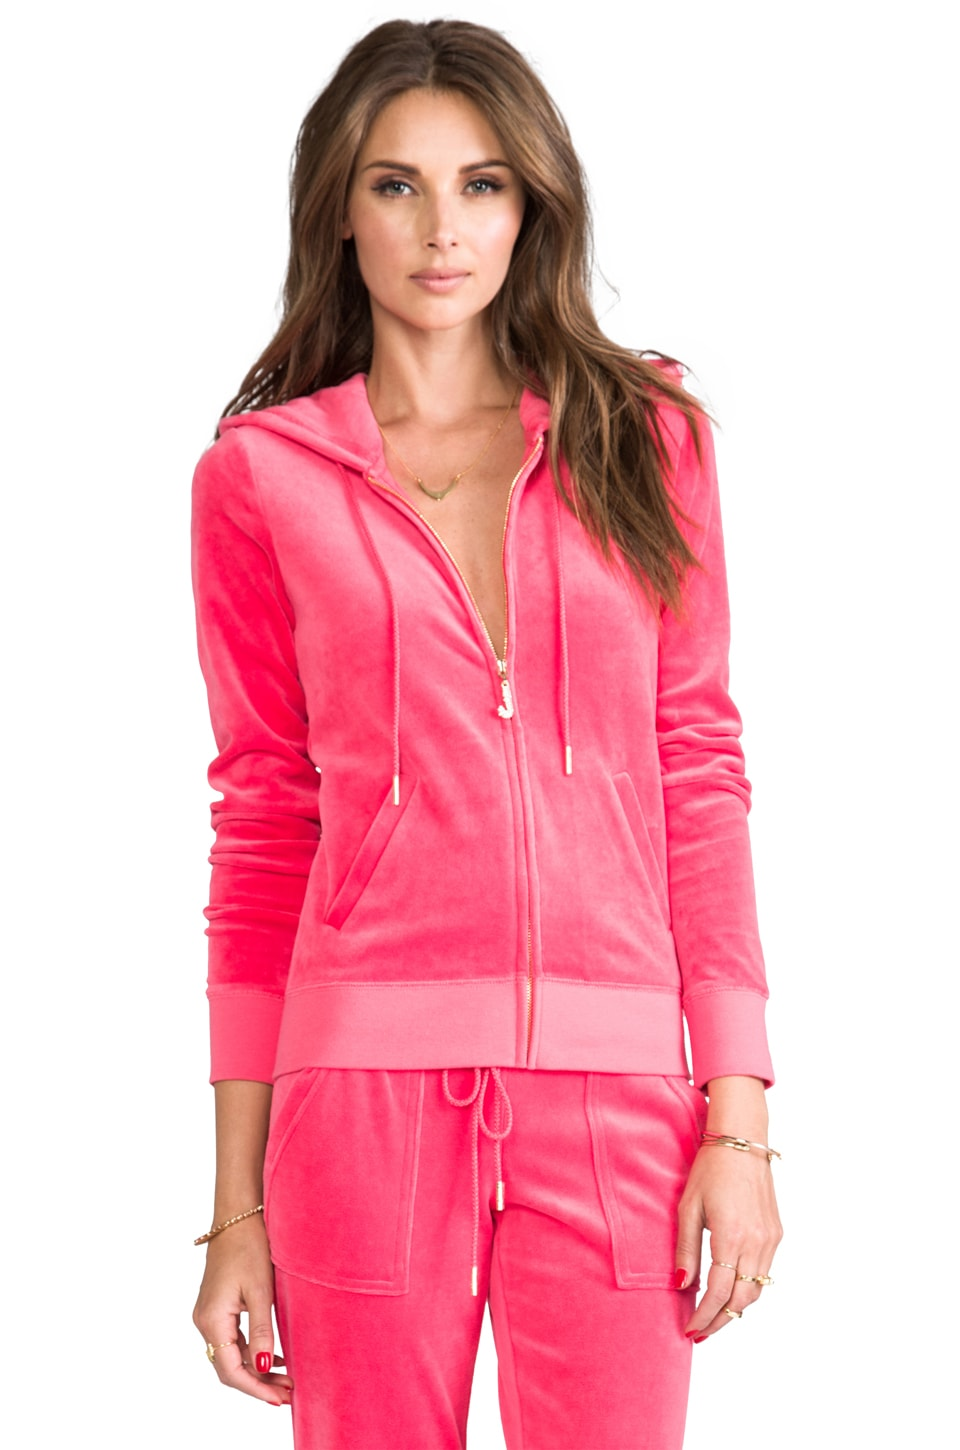 Juicy Couture J Bling Hoodie in Geranium